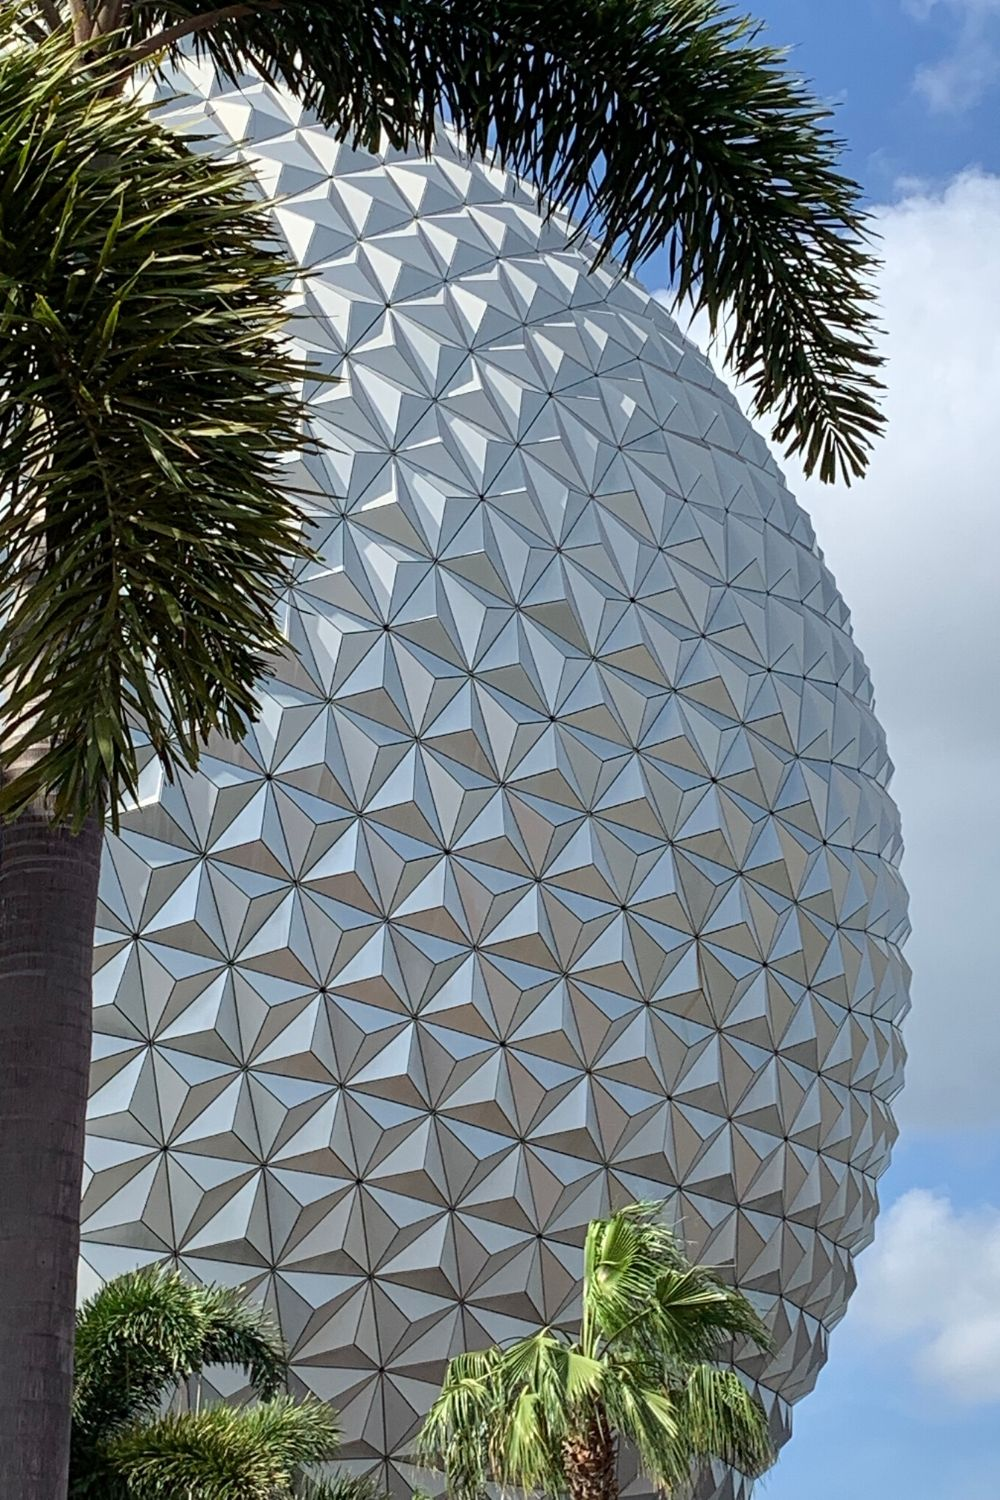 Epcot's International Festival of the Arts is a celebration of the arts. This event features several unique offerings from the food to entertainment. This Festival of the Arts at Walt Disney World brings together the visual, culinary, and performing arts. #festivalofthearts #disneytips #disneyworldplanning